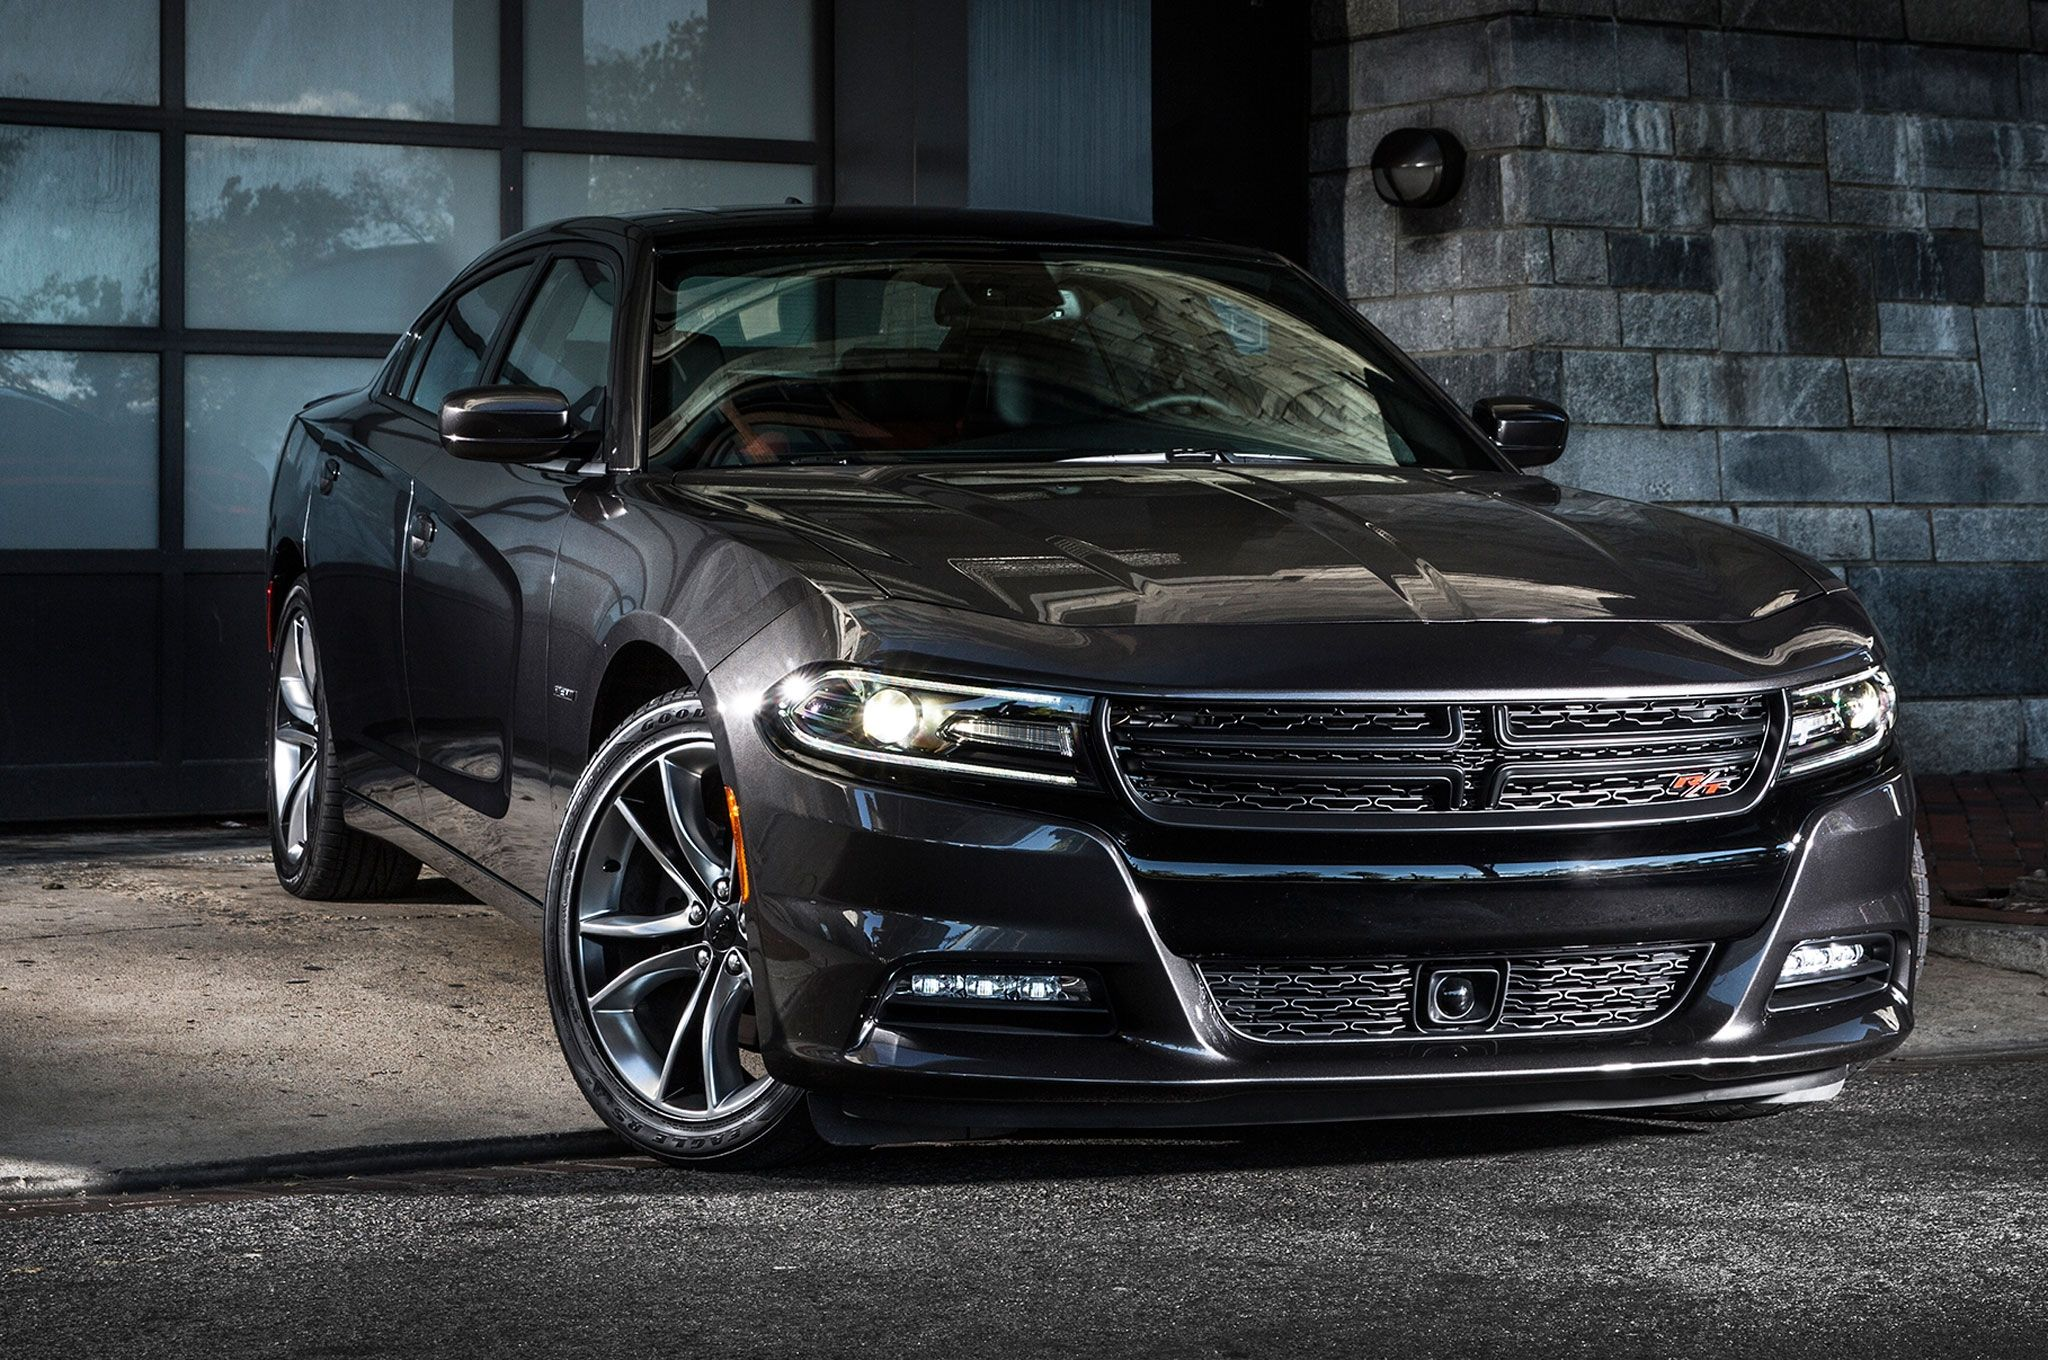 2015 dodge charger rt review dodge charger pinterest 2015 dodge charger dodge charger rt. Black Bedroom Furniture Sets. Home Design Ideas